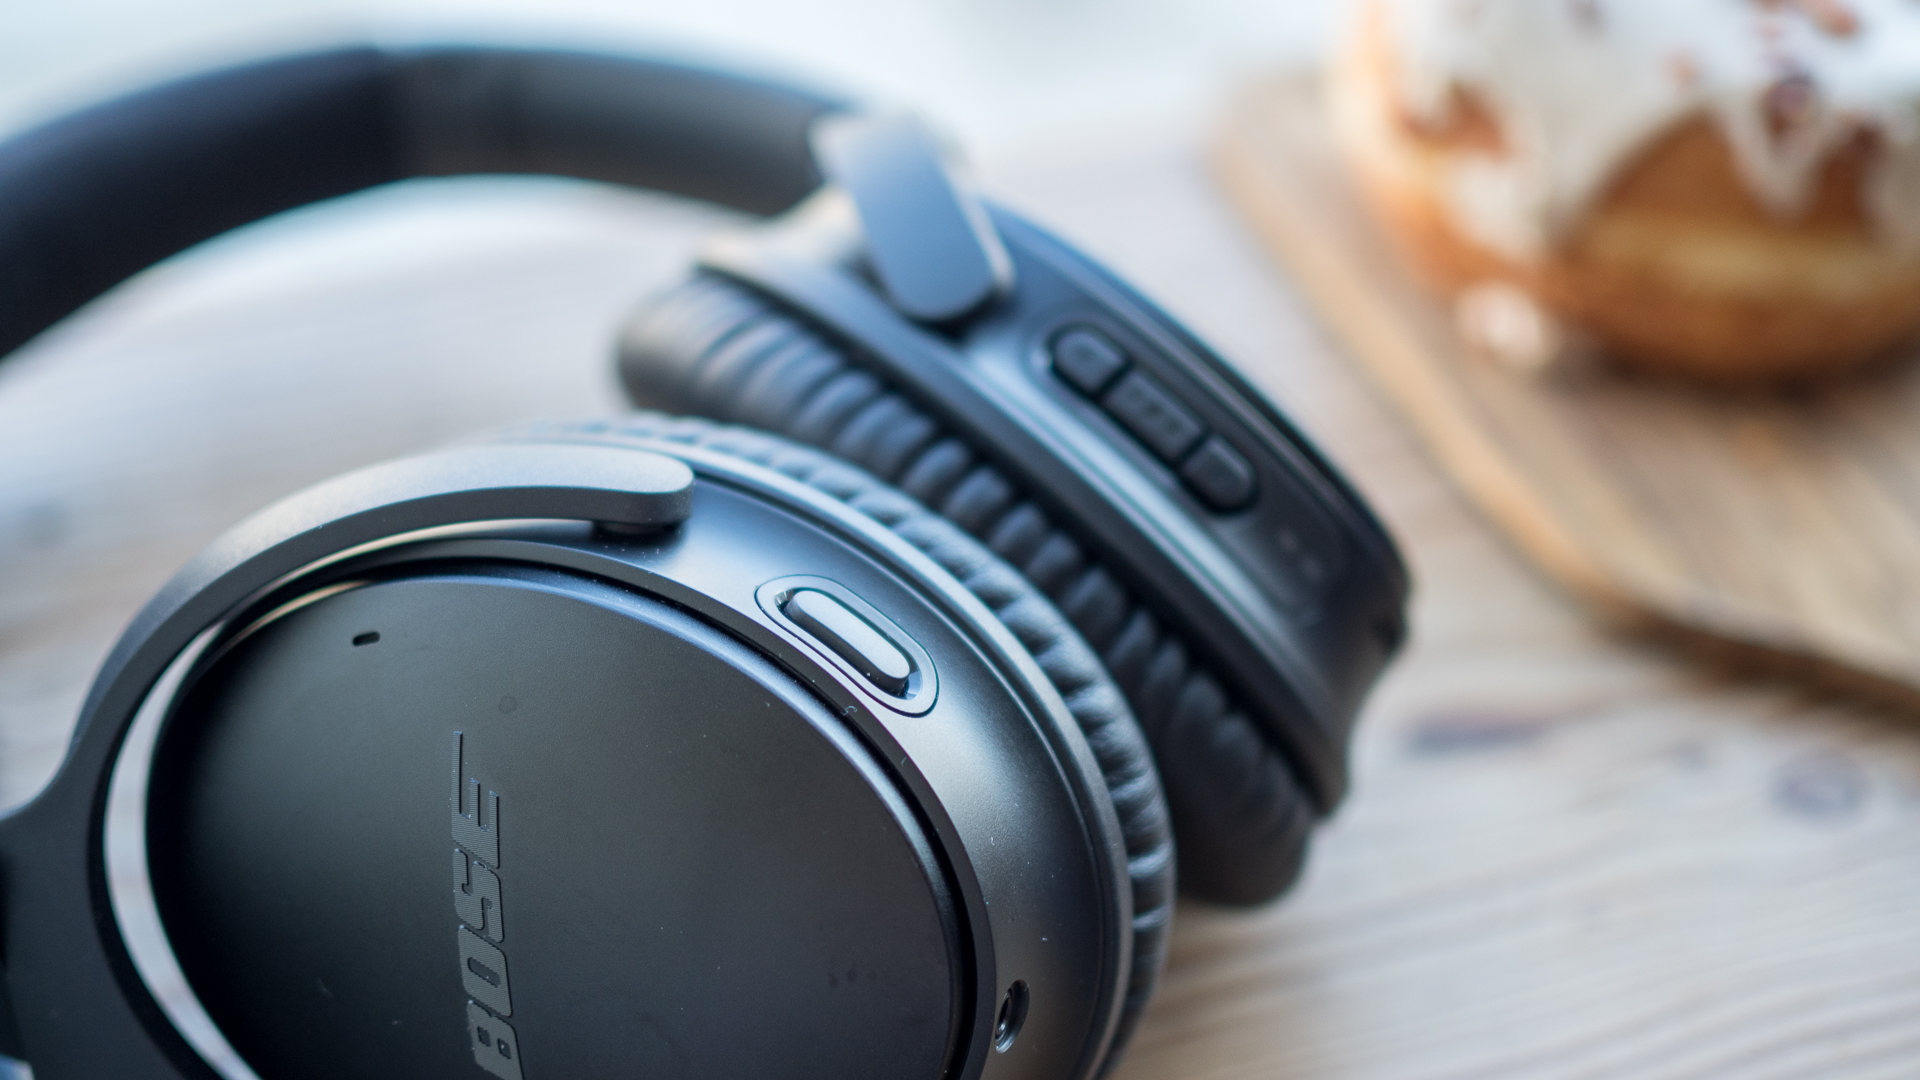 ad55951a0fb The best cheap Bose headphone sales and prices on Amazon Prime Day 2019 |  TechRadar